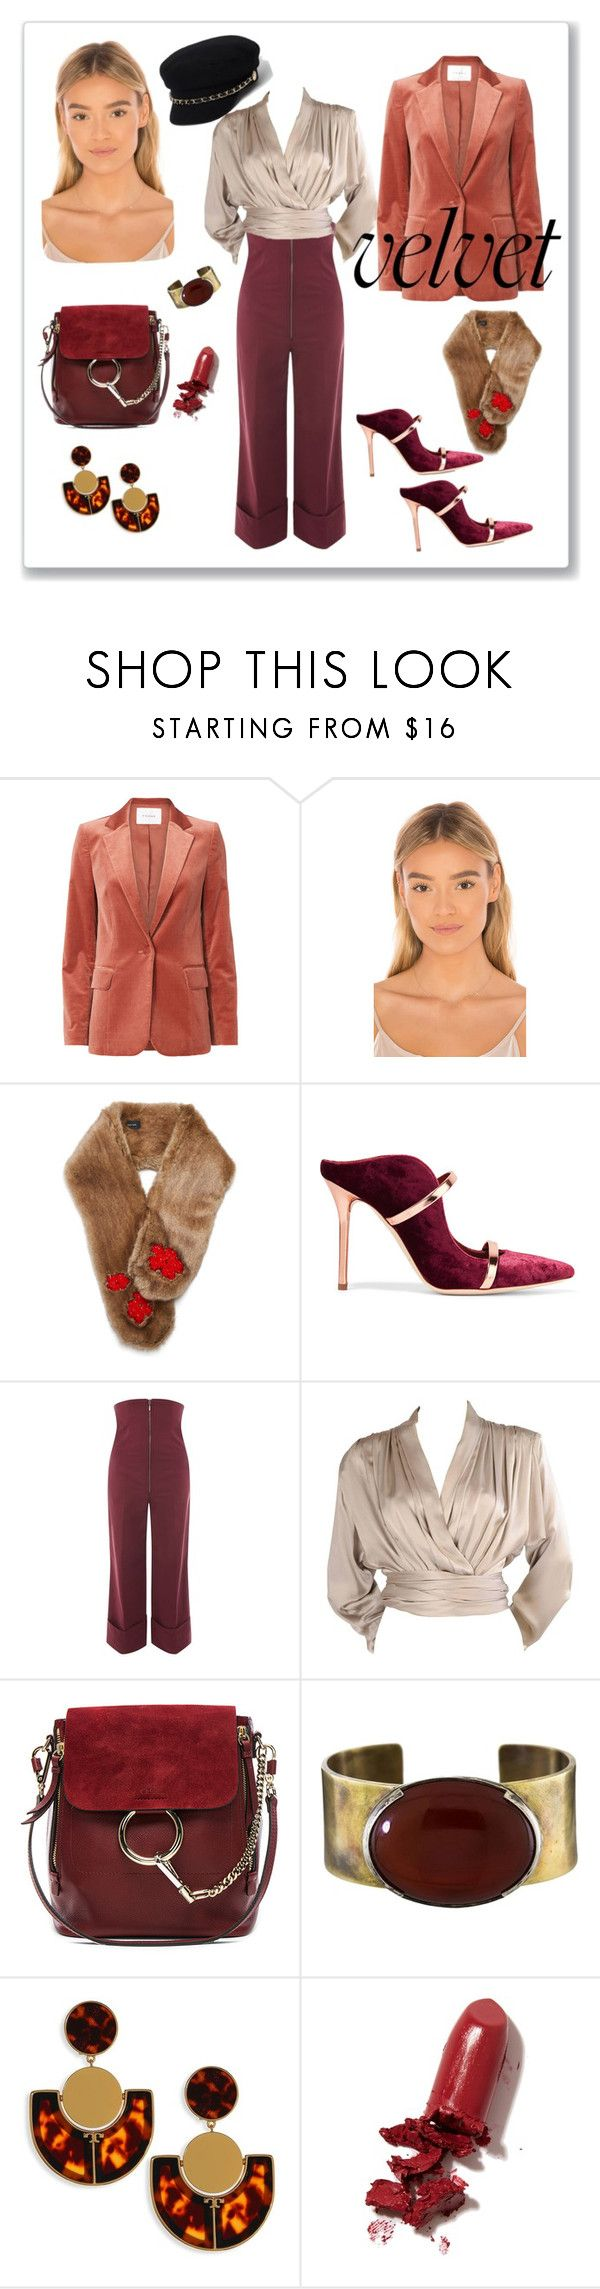 """""""Office style"""" by dilka-ylibka on Polyvore featuring мода, Frame, EF Collection, Simone Rocha, Malone Souliers, Topshop, Yves Saint Laurent, Chloé, Orduna Design и Tory Burch"""